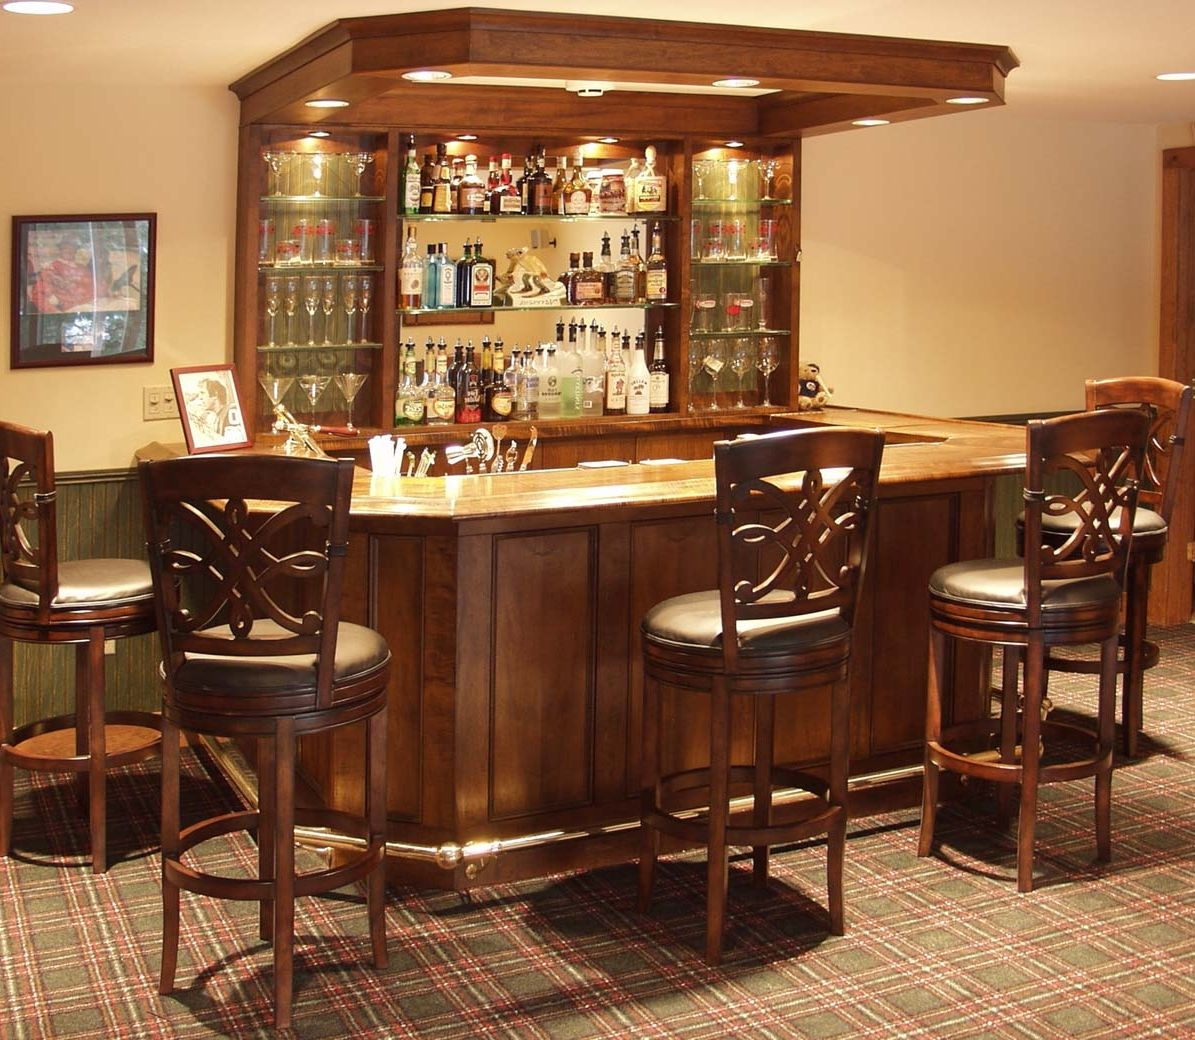 Home Bar Decor Ideas: 35 Best Home Bar Design Ideas